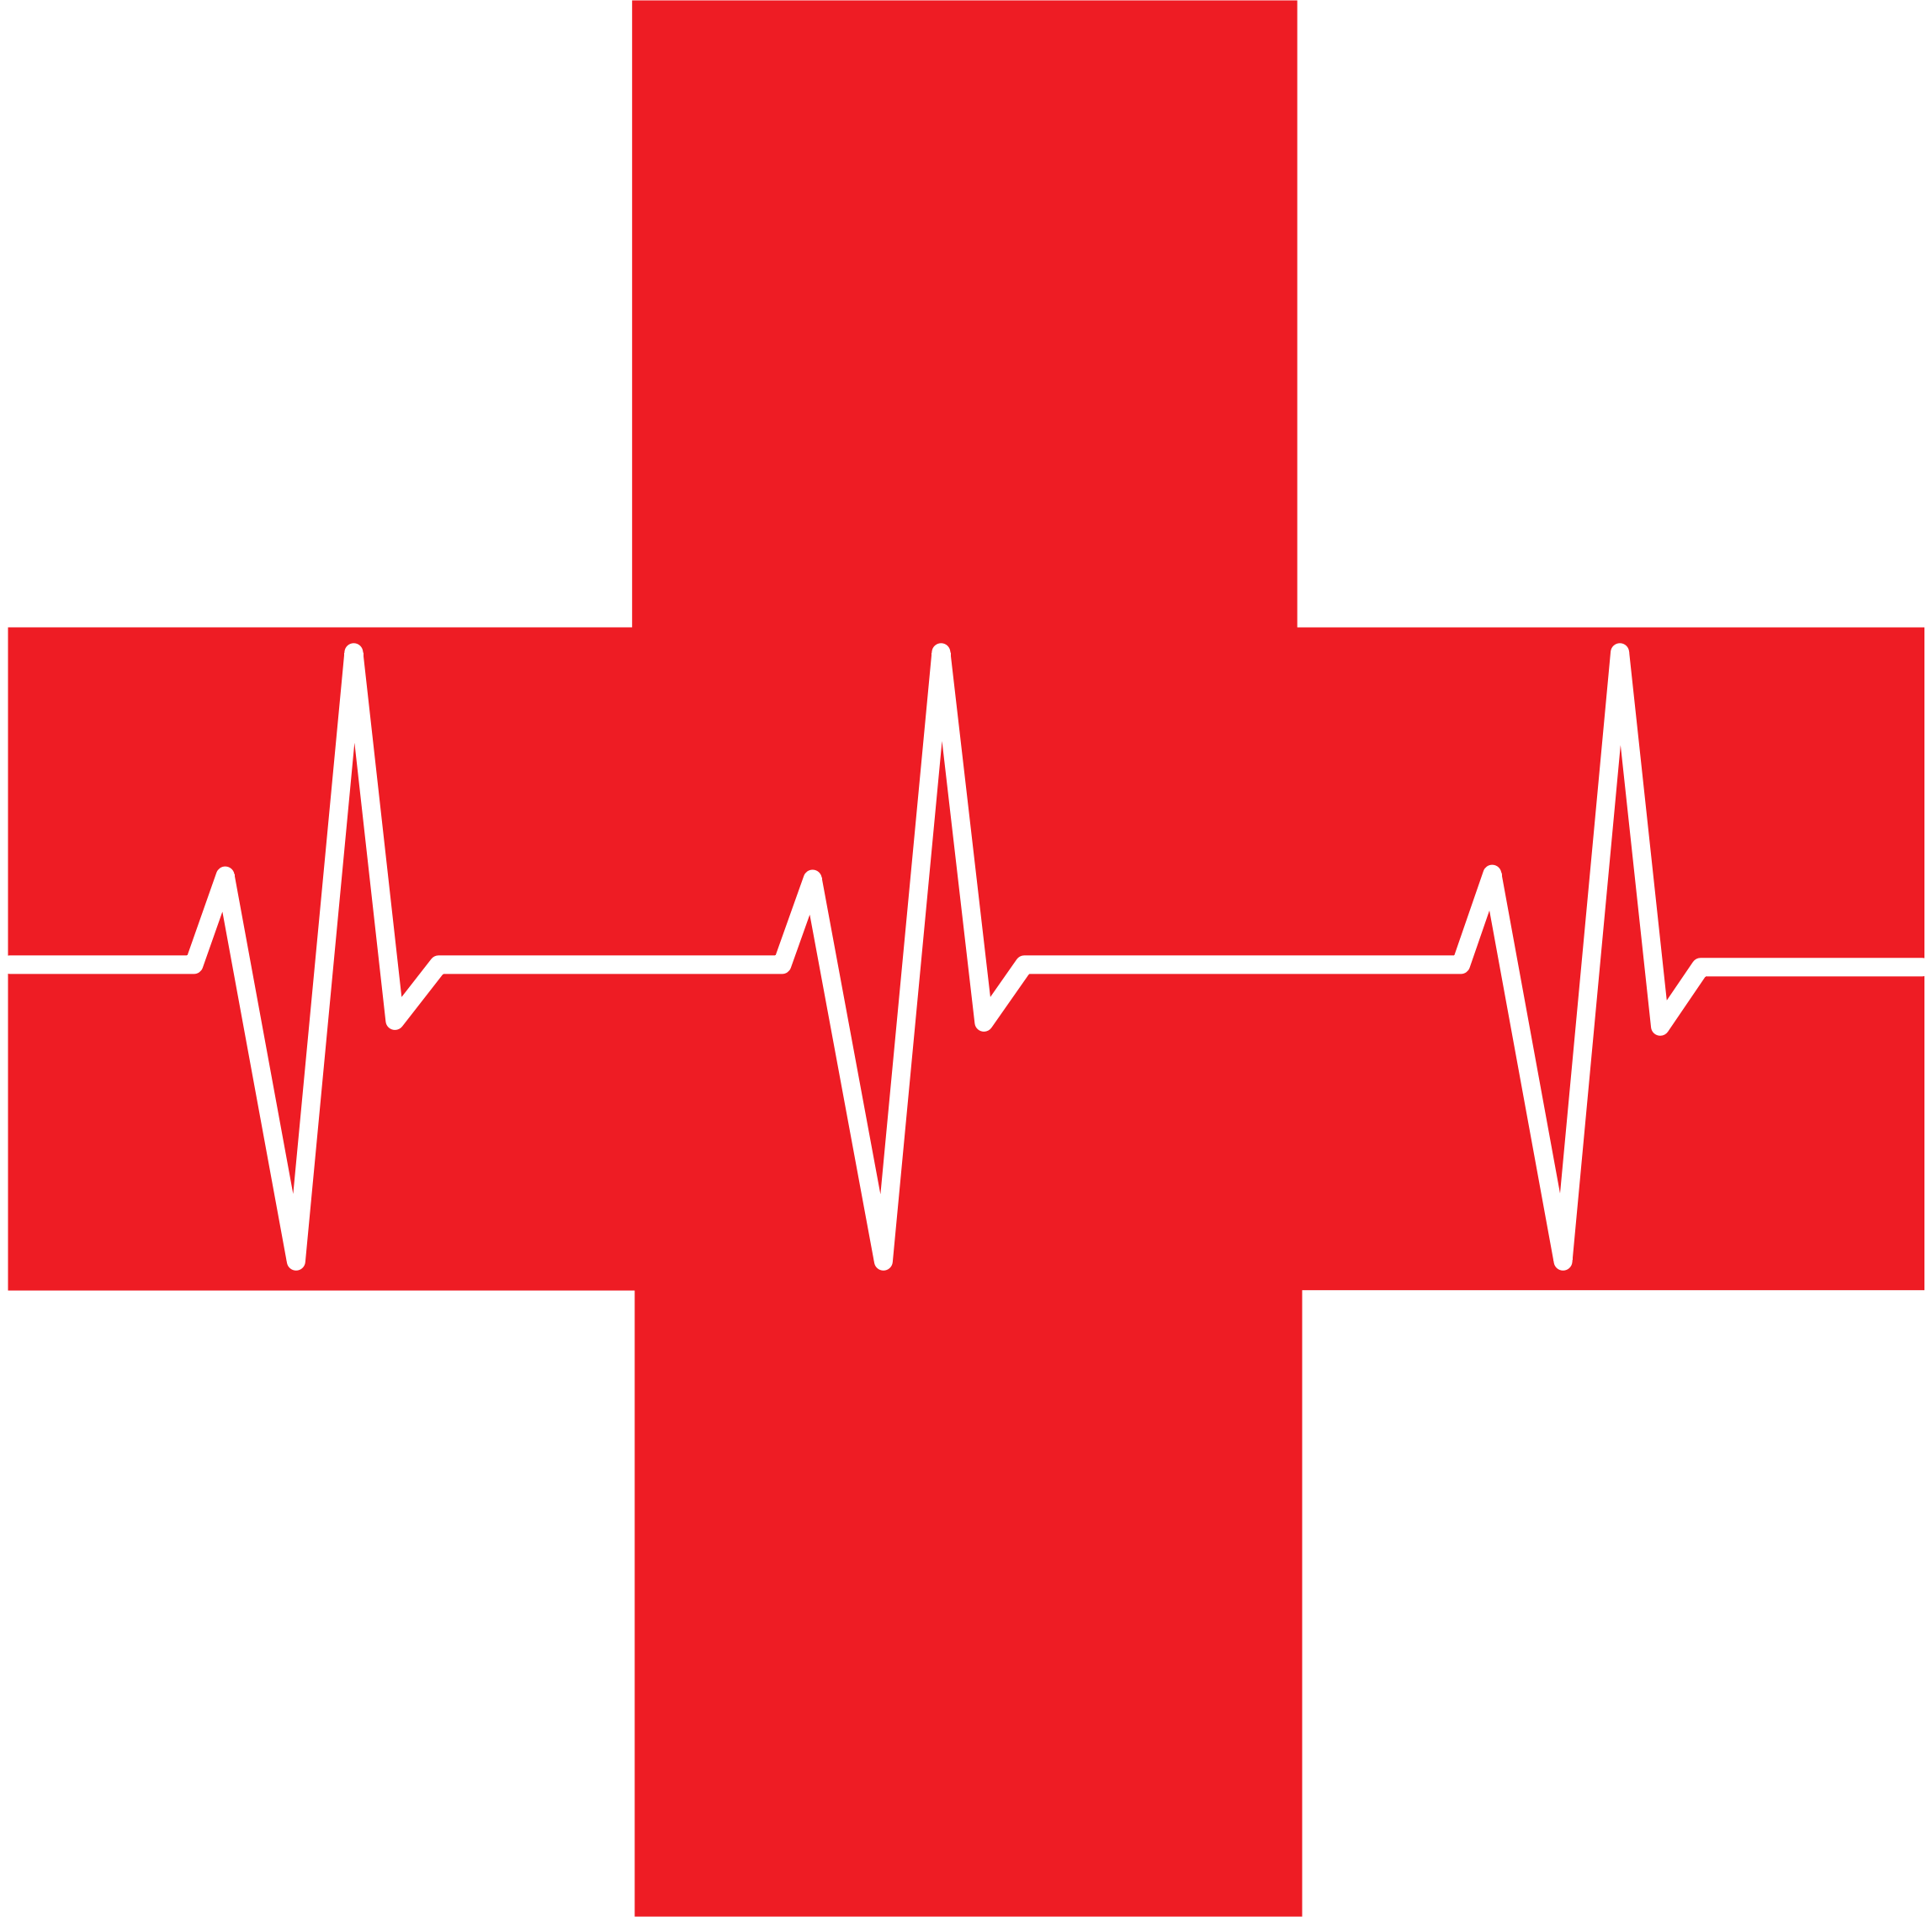 Red Cross clipart correct #12